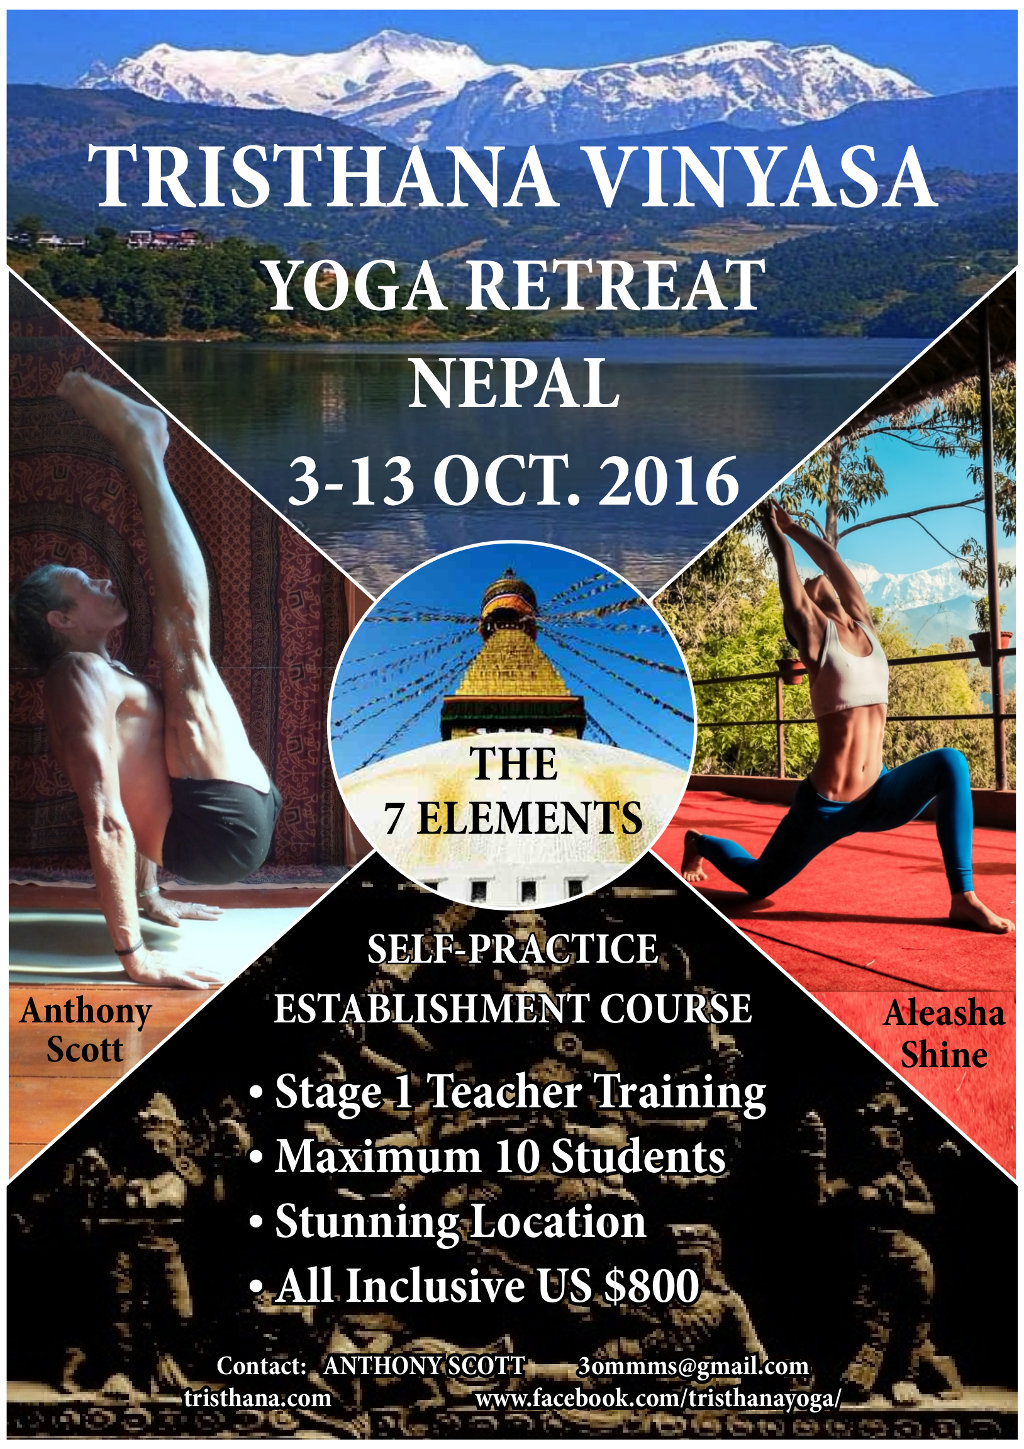 Yoga retreat Nepal 3-13 OCT. 2016. Self-practice establishment course: stage 1 teacher training, maximum 10 students, stunning location, all inclusive US $800. Contact Anthony Scott, 3ommms@gmail.com, tristhana.com, www.facebook.com/tristhanayoga/. With Anthony Scott and Aleasha Shine.